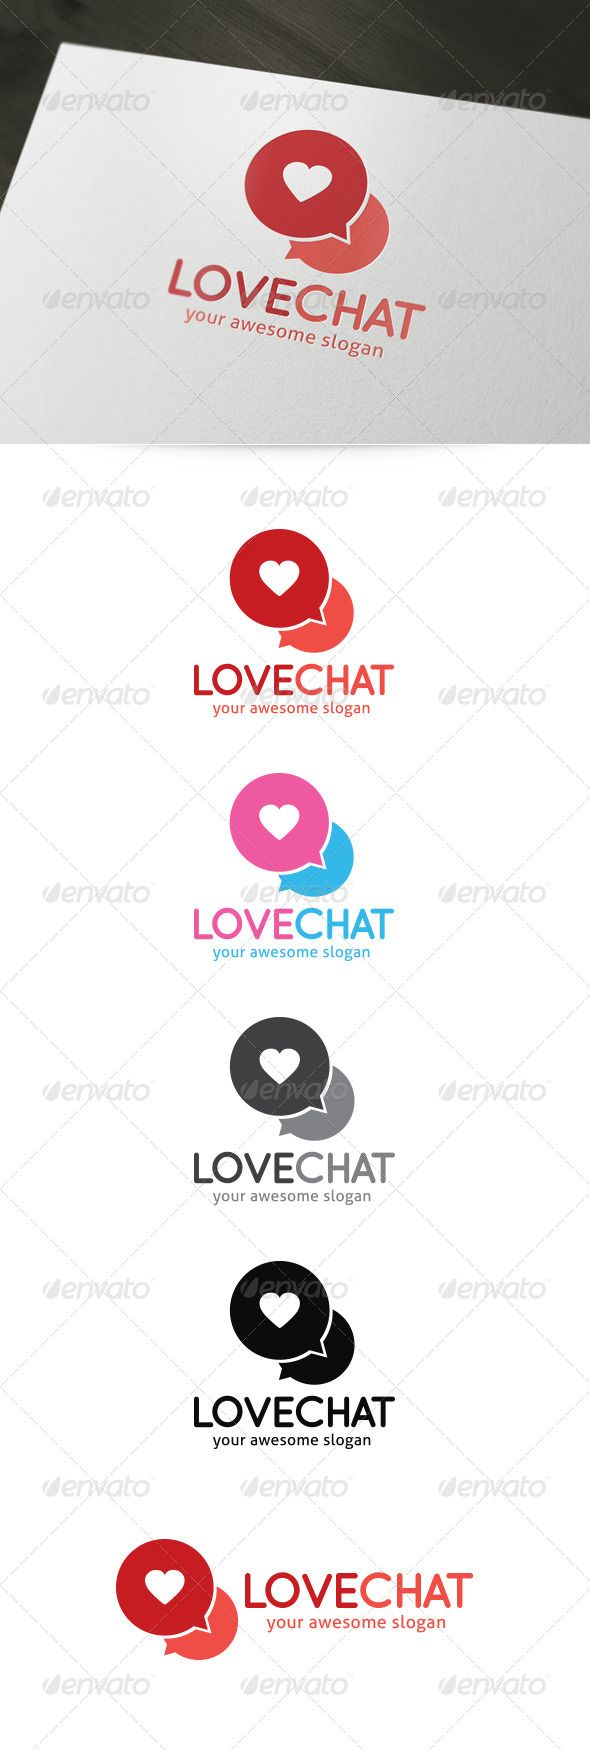 Love chat and dating